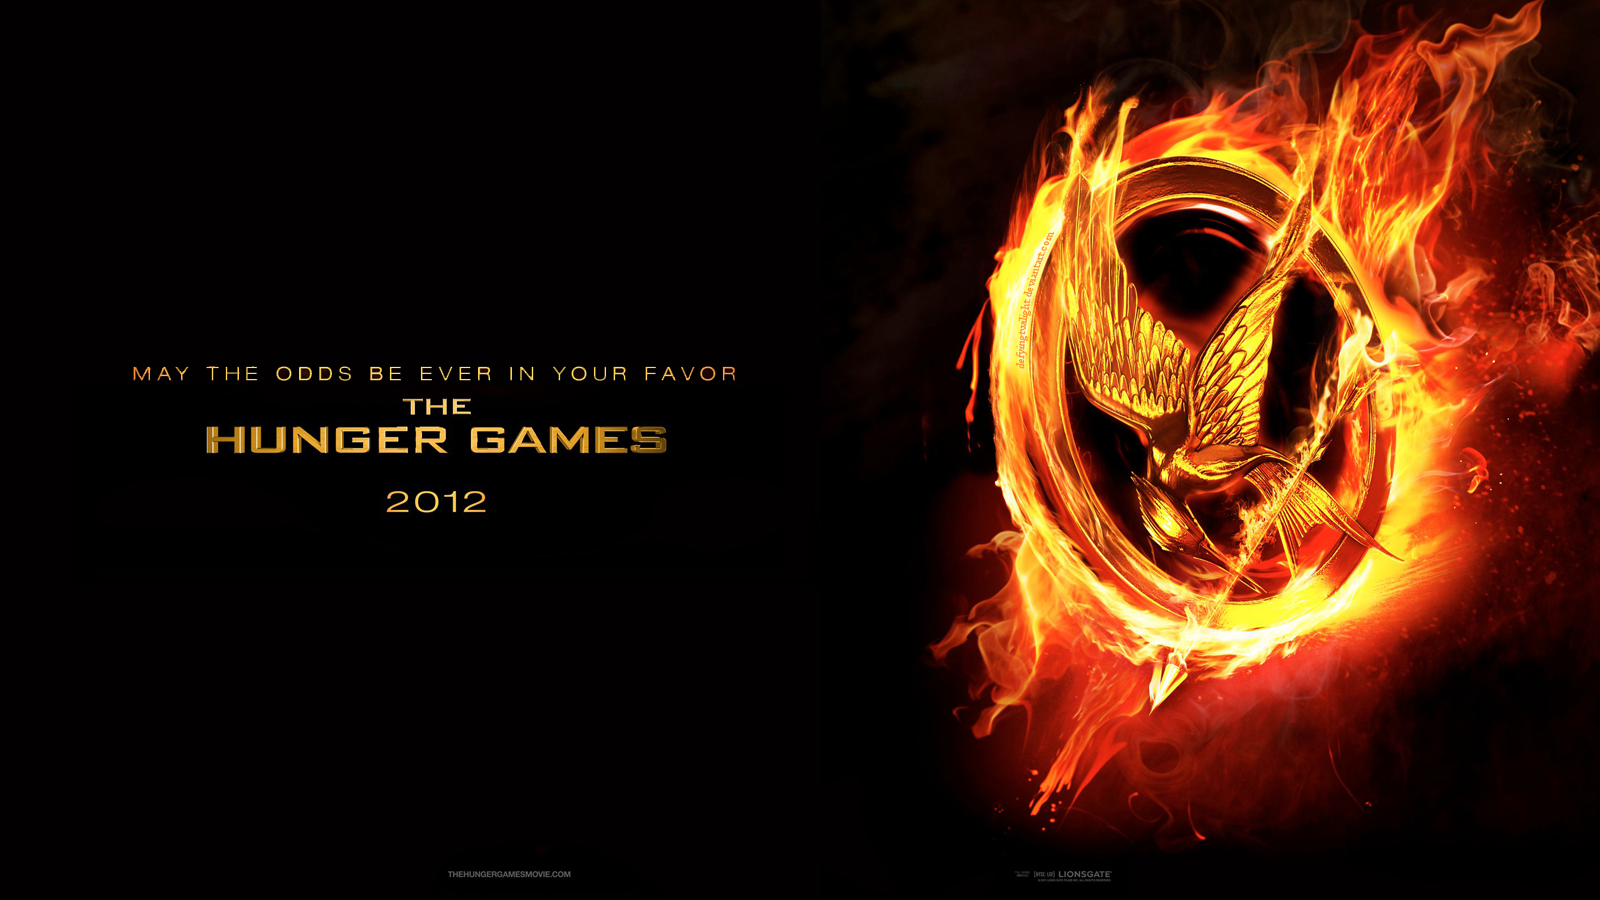 The Hunger Games 'The Hunger Games' Movie Poster Wallpapers